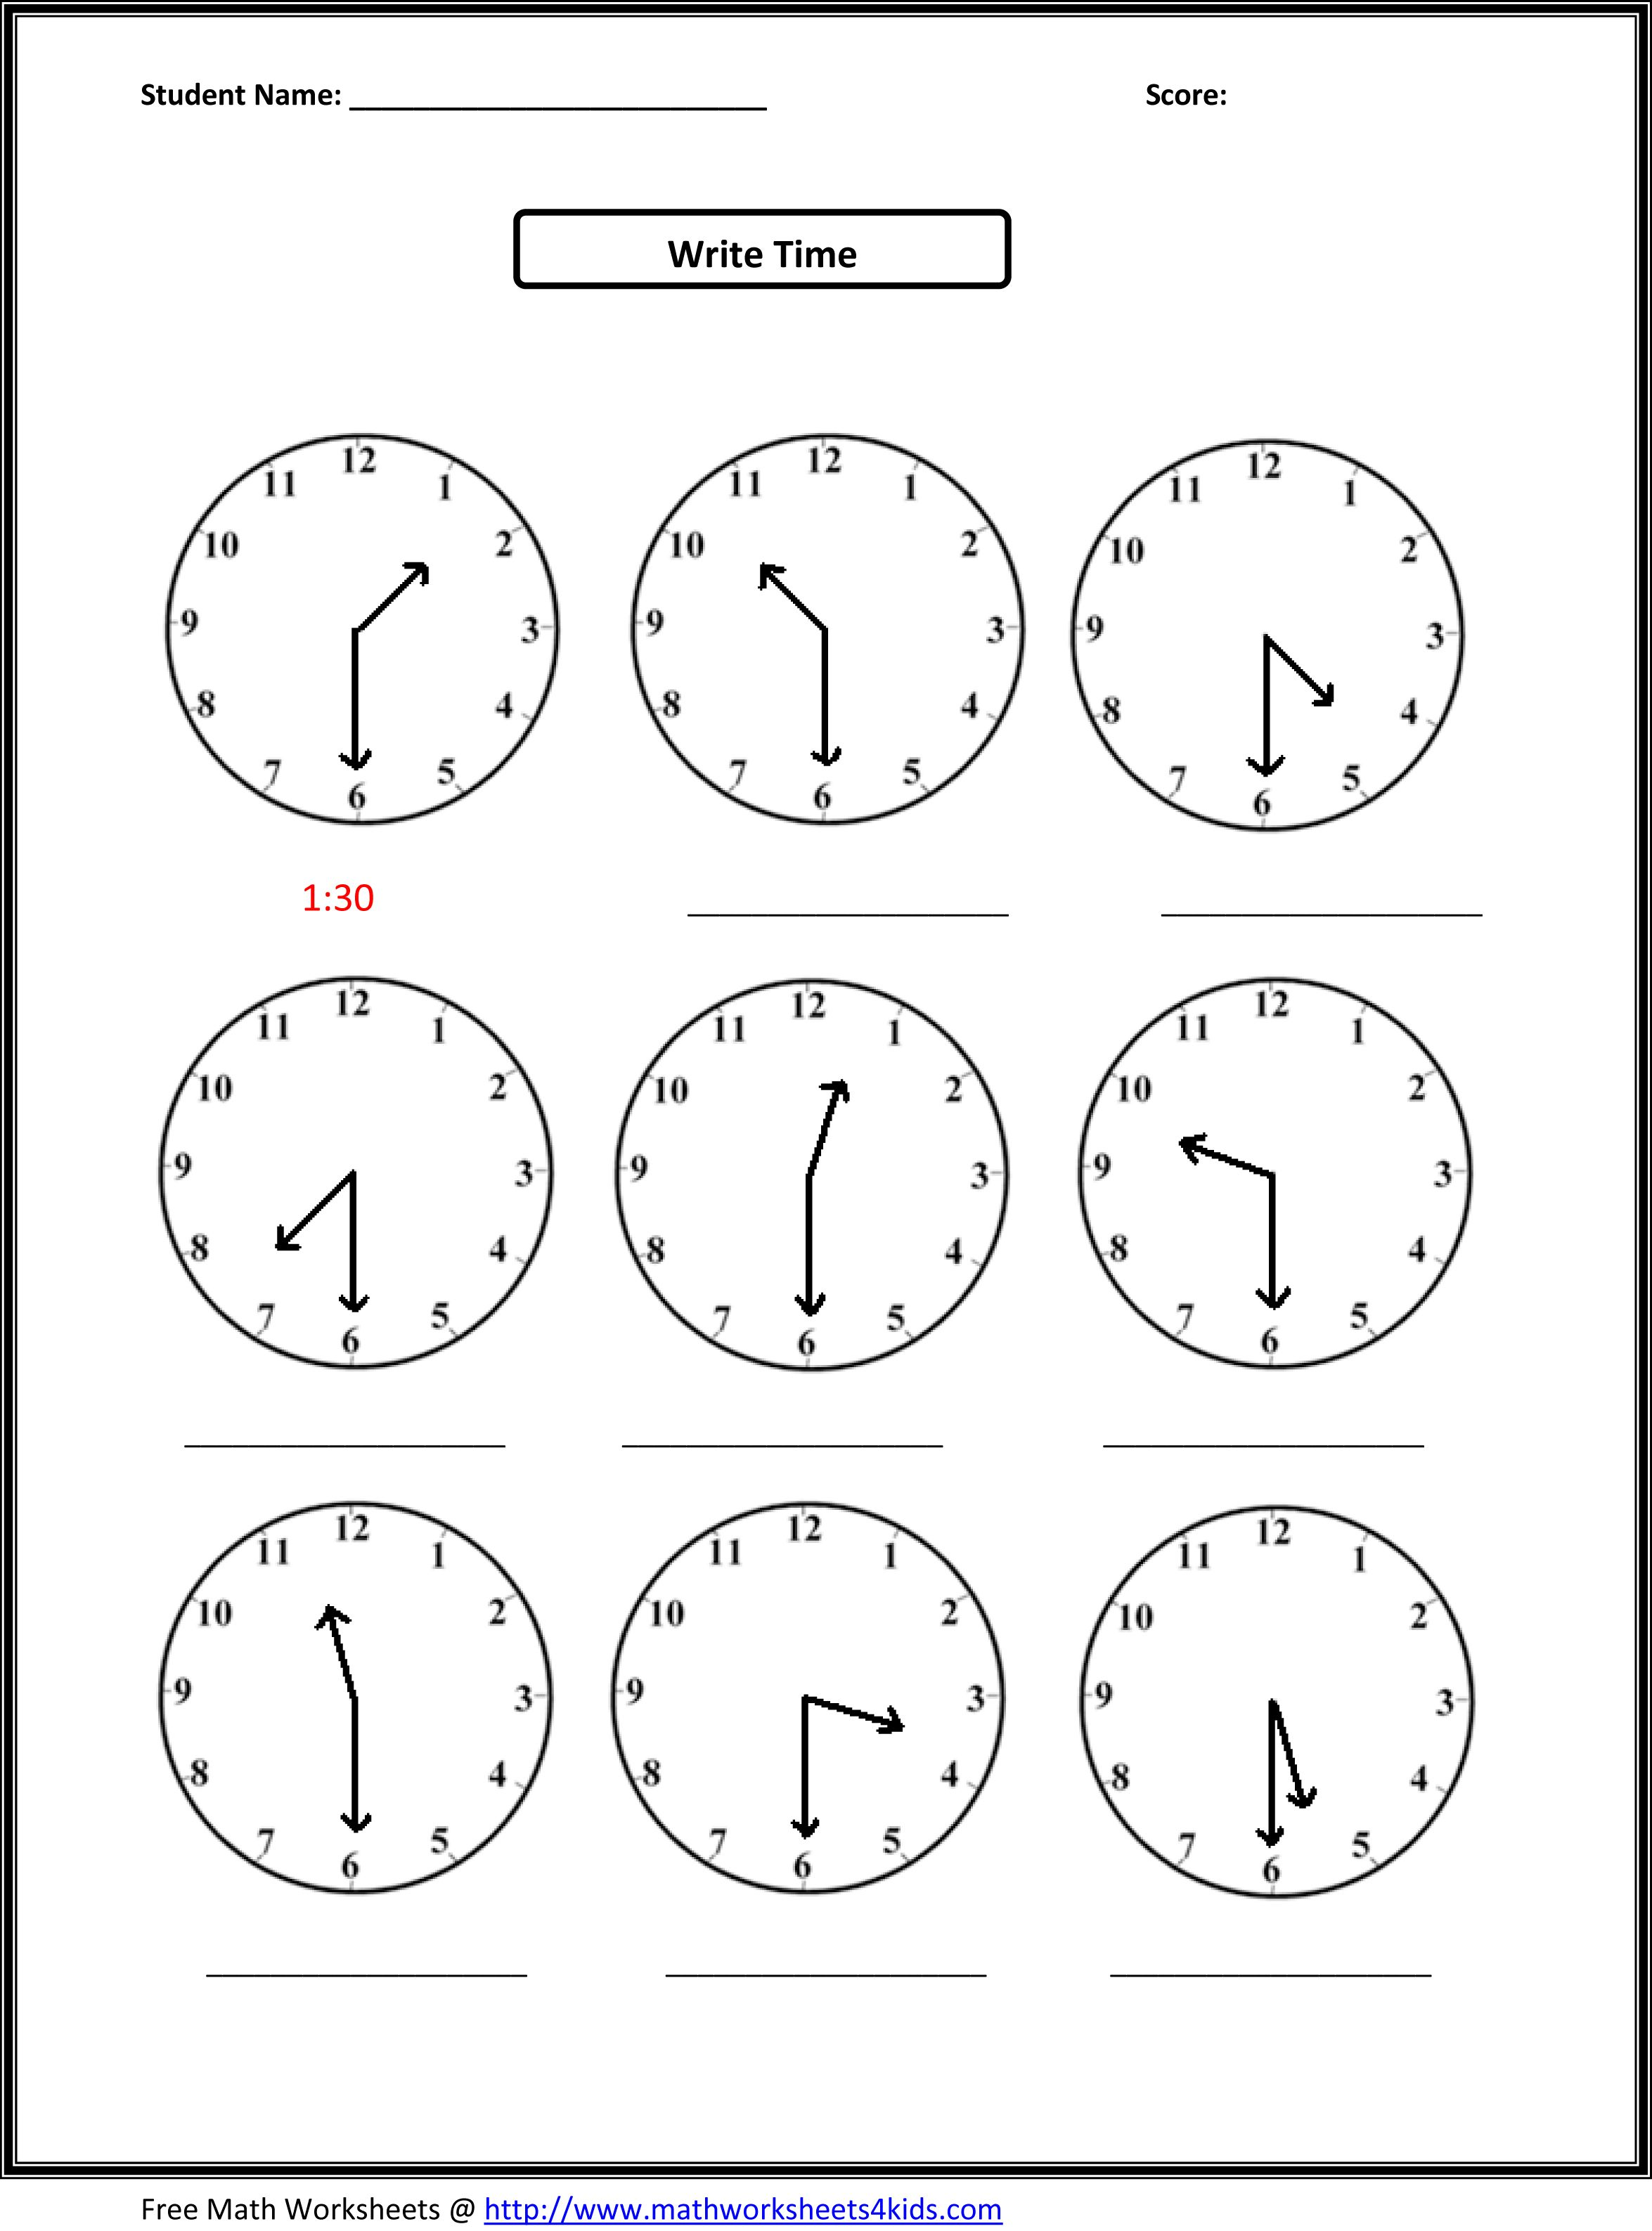 Weirdmailus  Nice Worksheet On Time For Grade   Reocurent With Extraordinary Free Printable Telling Time Worksheets Nd Grade  Reocurent With Beautiful Ncaa Division  Worksheet Also Writing Words Worksheets In Addition Fractions Printable Worksheets And Holt Physics Section Review Worksheet Answers As Well As Lewis Dot Structure Worksheets Additionally Cutting Skills Worksheets From Reocurentcom With Weirdmailus  Extraordinary Worksheet On Time For Grade   Reocurent With Beautiful Free Printable Telling Time Worksheets Nd Grade  Reocurent And Nice Ncaa Division  Worksheet Also Writing Words Worksheets In Addition Fractions Printable Worksheets From Reocurentcom